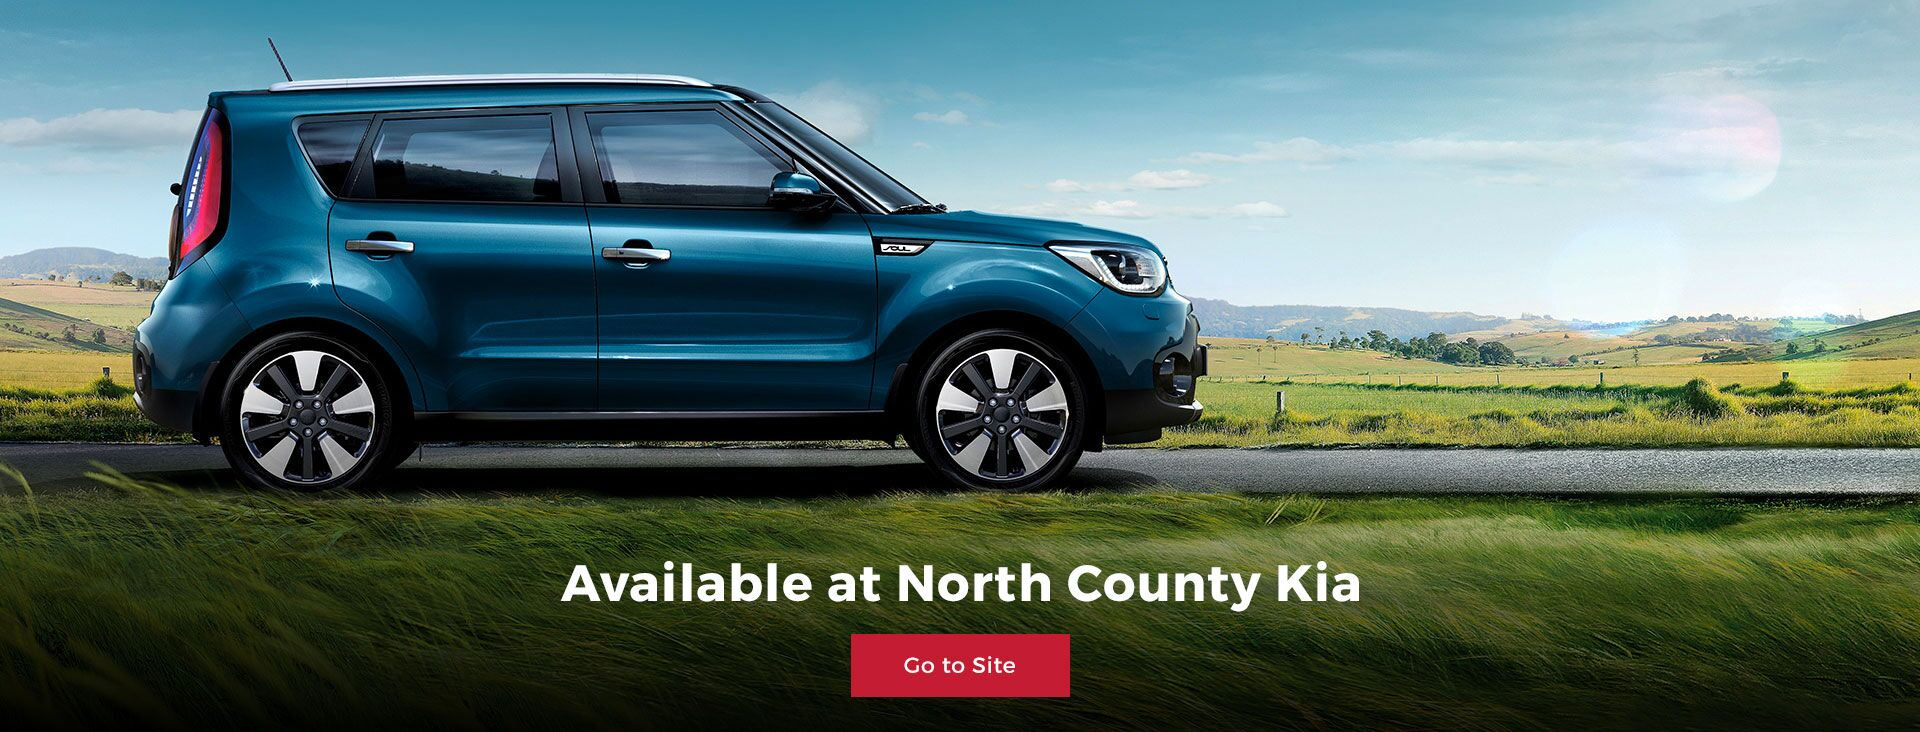 NORTH COUNTY KIA in Escondido, CA